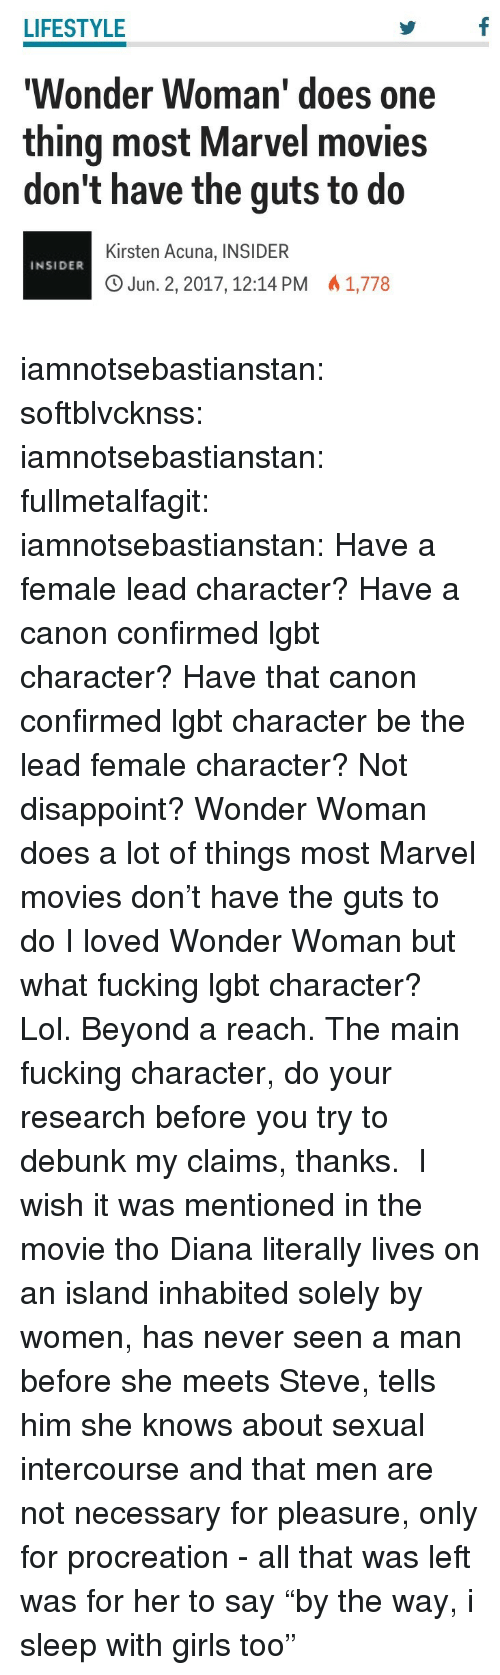 """Fucking, Girls, and Lgbt: LIFESTYLE  Wonder Woman' does one  thing most Marvel movies  don't have the guts to do  Kirsten Acuna, INSIDER  O Jun. 2, 2017, 12:14 PM 1,778  INSIDER iamnotsebastianstan: softblvcknss:   iamnotsebastianstan:   fullmetalfagit:  iamnotsebastianstan:  Have a female lead character? Have a canon confirmed lgbt character? Have that canon confirmed lgbt character be the lead female character? Not disappoint? Wonder Woman does a lot of things most Marvel movies don't have the guts to do  I loved Wonder Woman but what fucking lgbt character? Lol. Beyond a reach.   The main fucking character, do your research before you try to debunk my claims, thanks.   I wish it was mentioned in the movie tho   Diana literally lives on an island inhabited solely by women, has never seen a man before she meets Steve, tells him she knows about sexual intercourse and that men are not necessary for pleasure, only for procreation - all that was left was for her to say """"by the way, i sleep with girls too"""""""